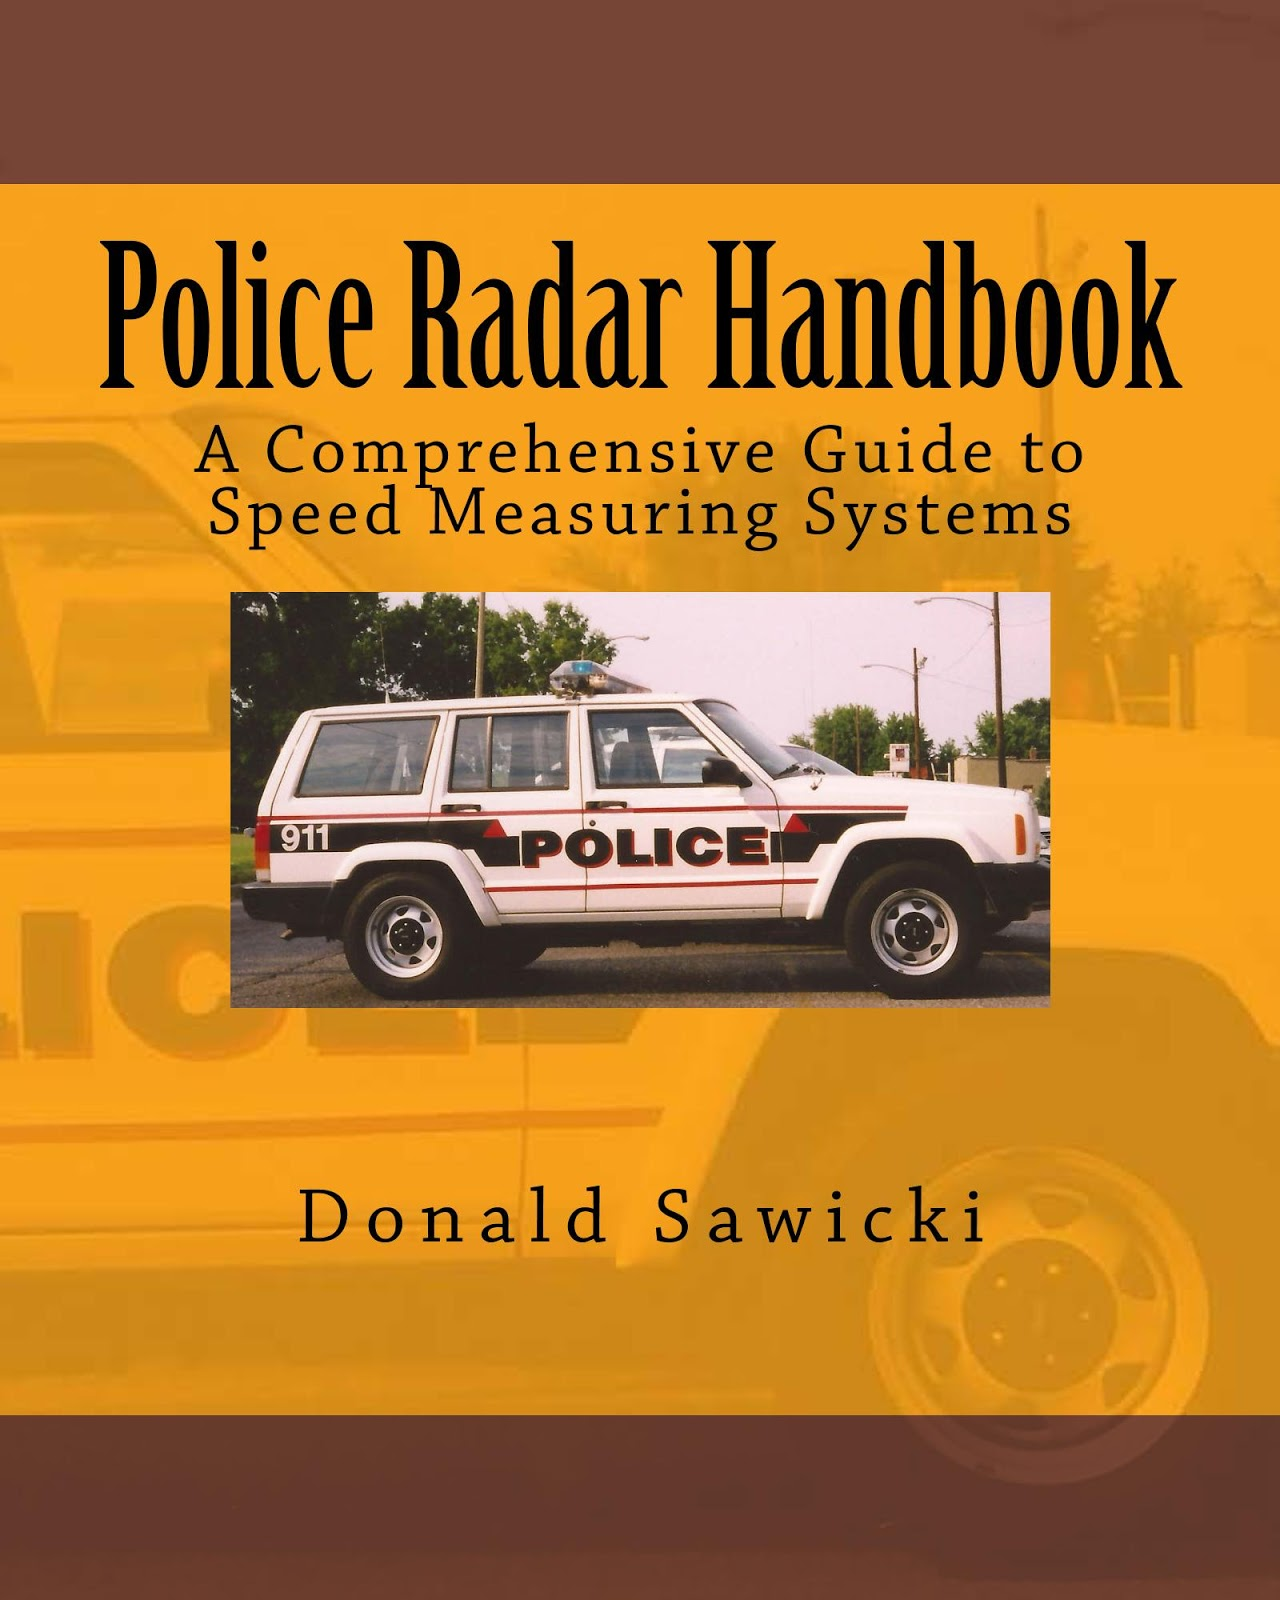 CopRadar Blog: Police Radar Handbook Explains Wrongful